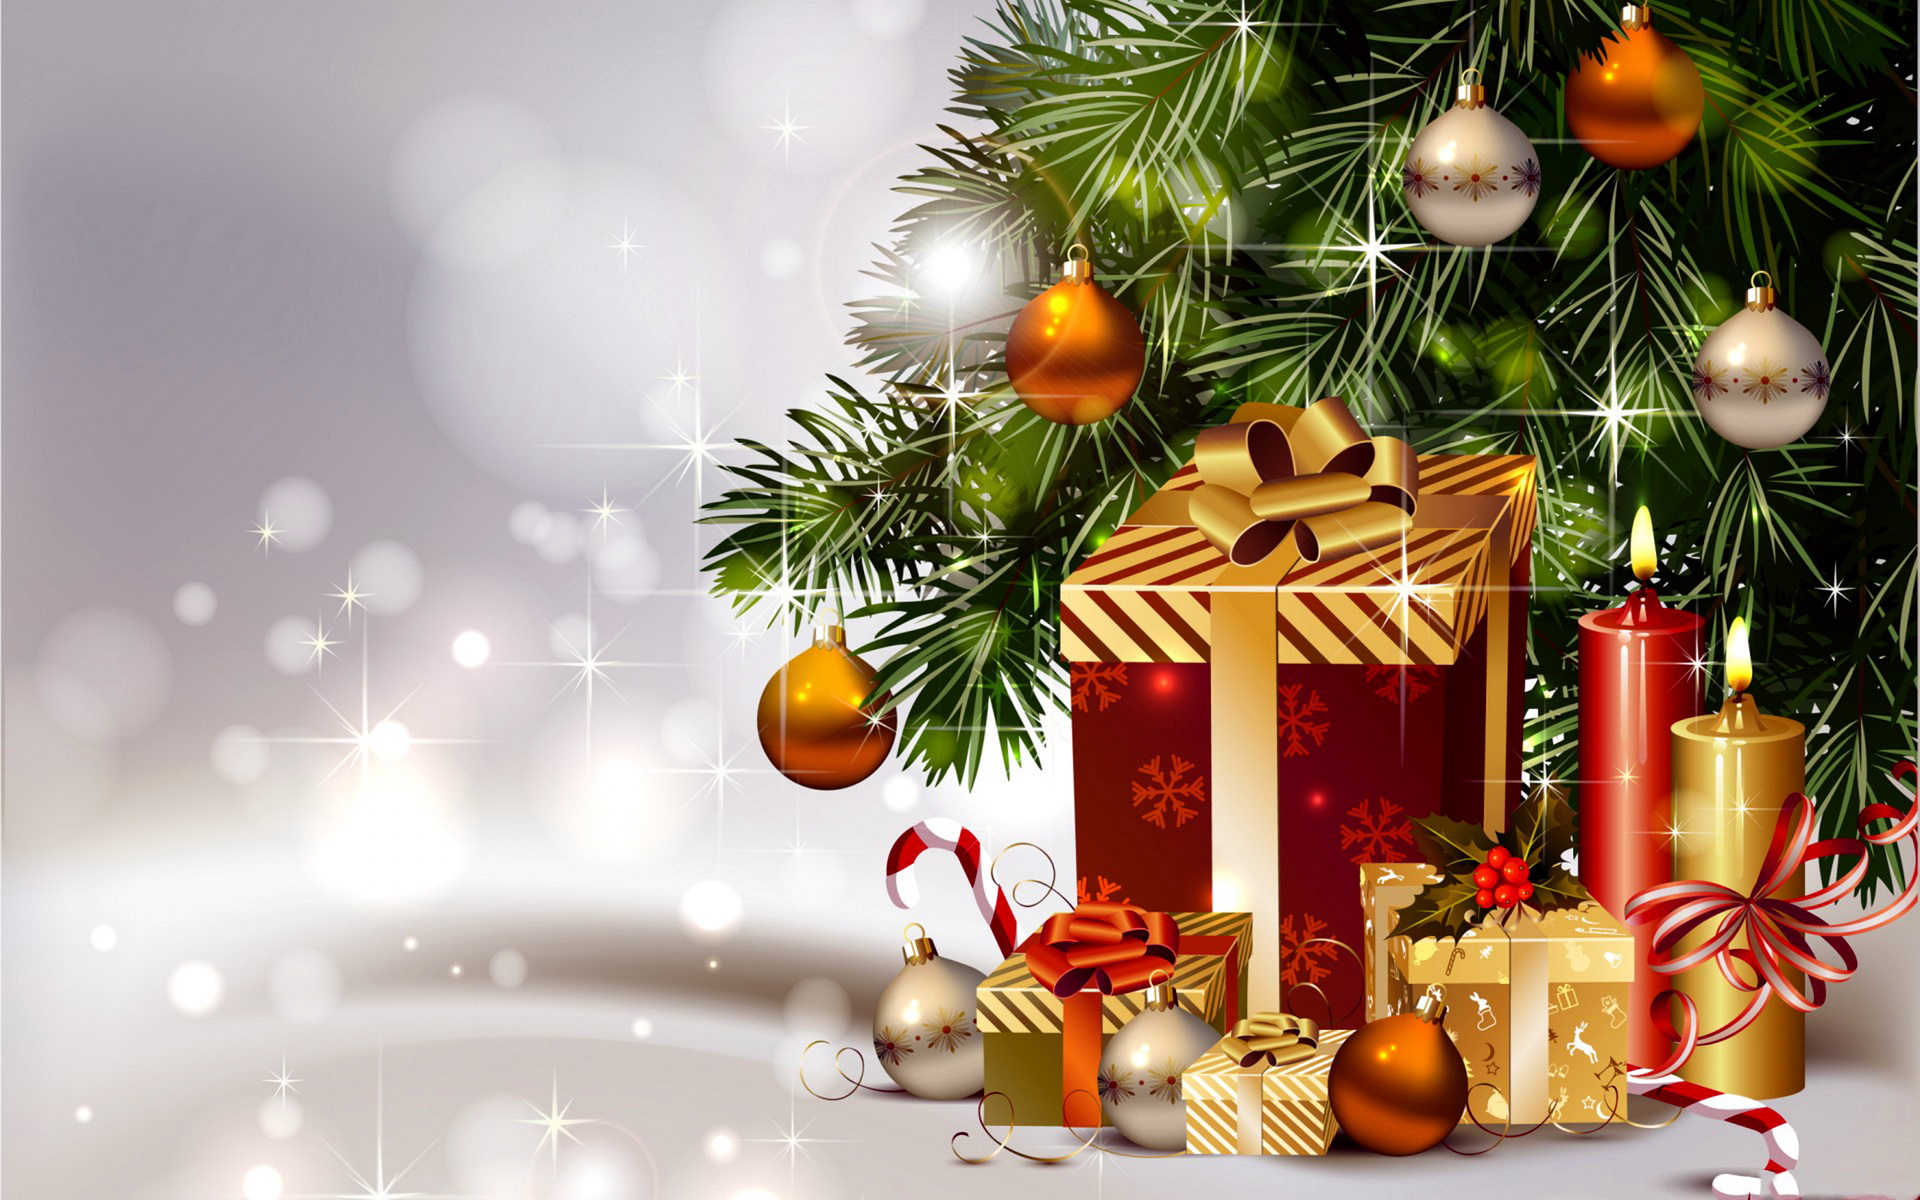 display-gifts-merry-christmas-hd-wallpaper-1.jpg